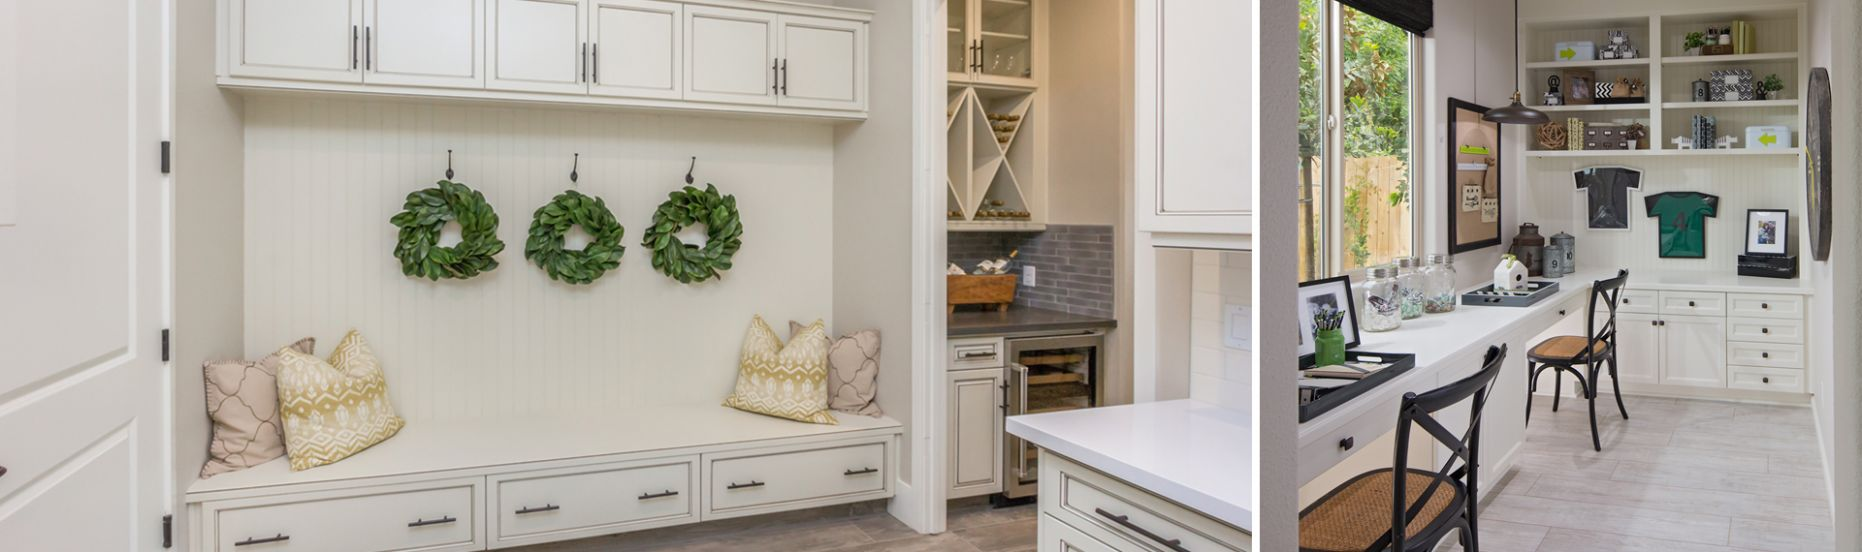 Organizing Your Home With a Drop Zone - McCaffrey Homes - kitchen drop zone ideas